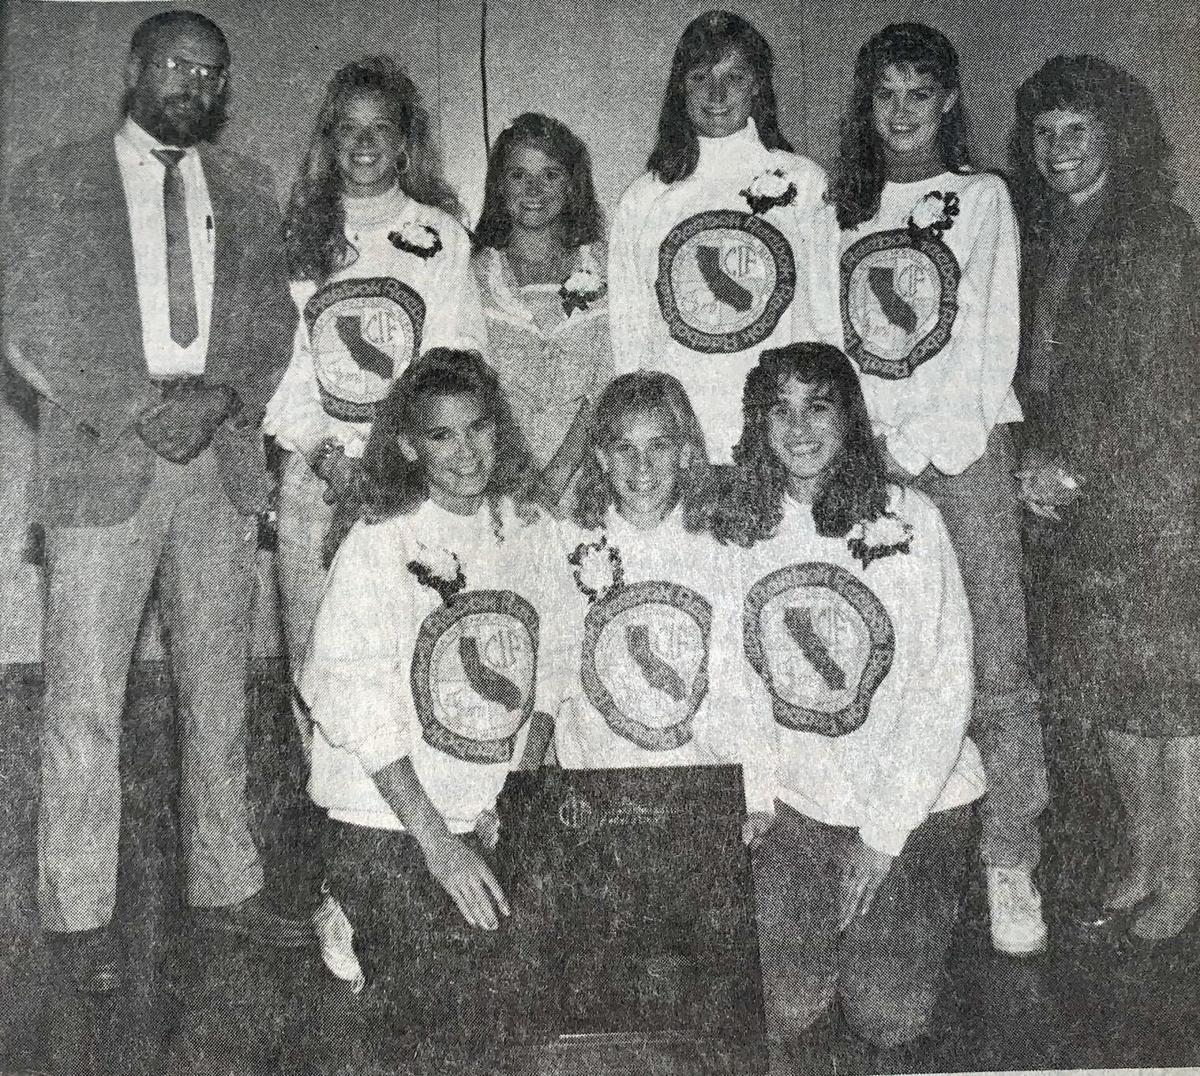 Bullfrog cross country won league, section, state titles in 1988